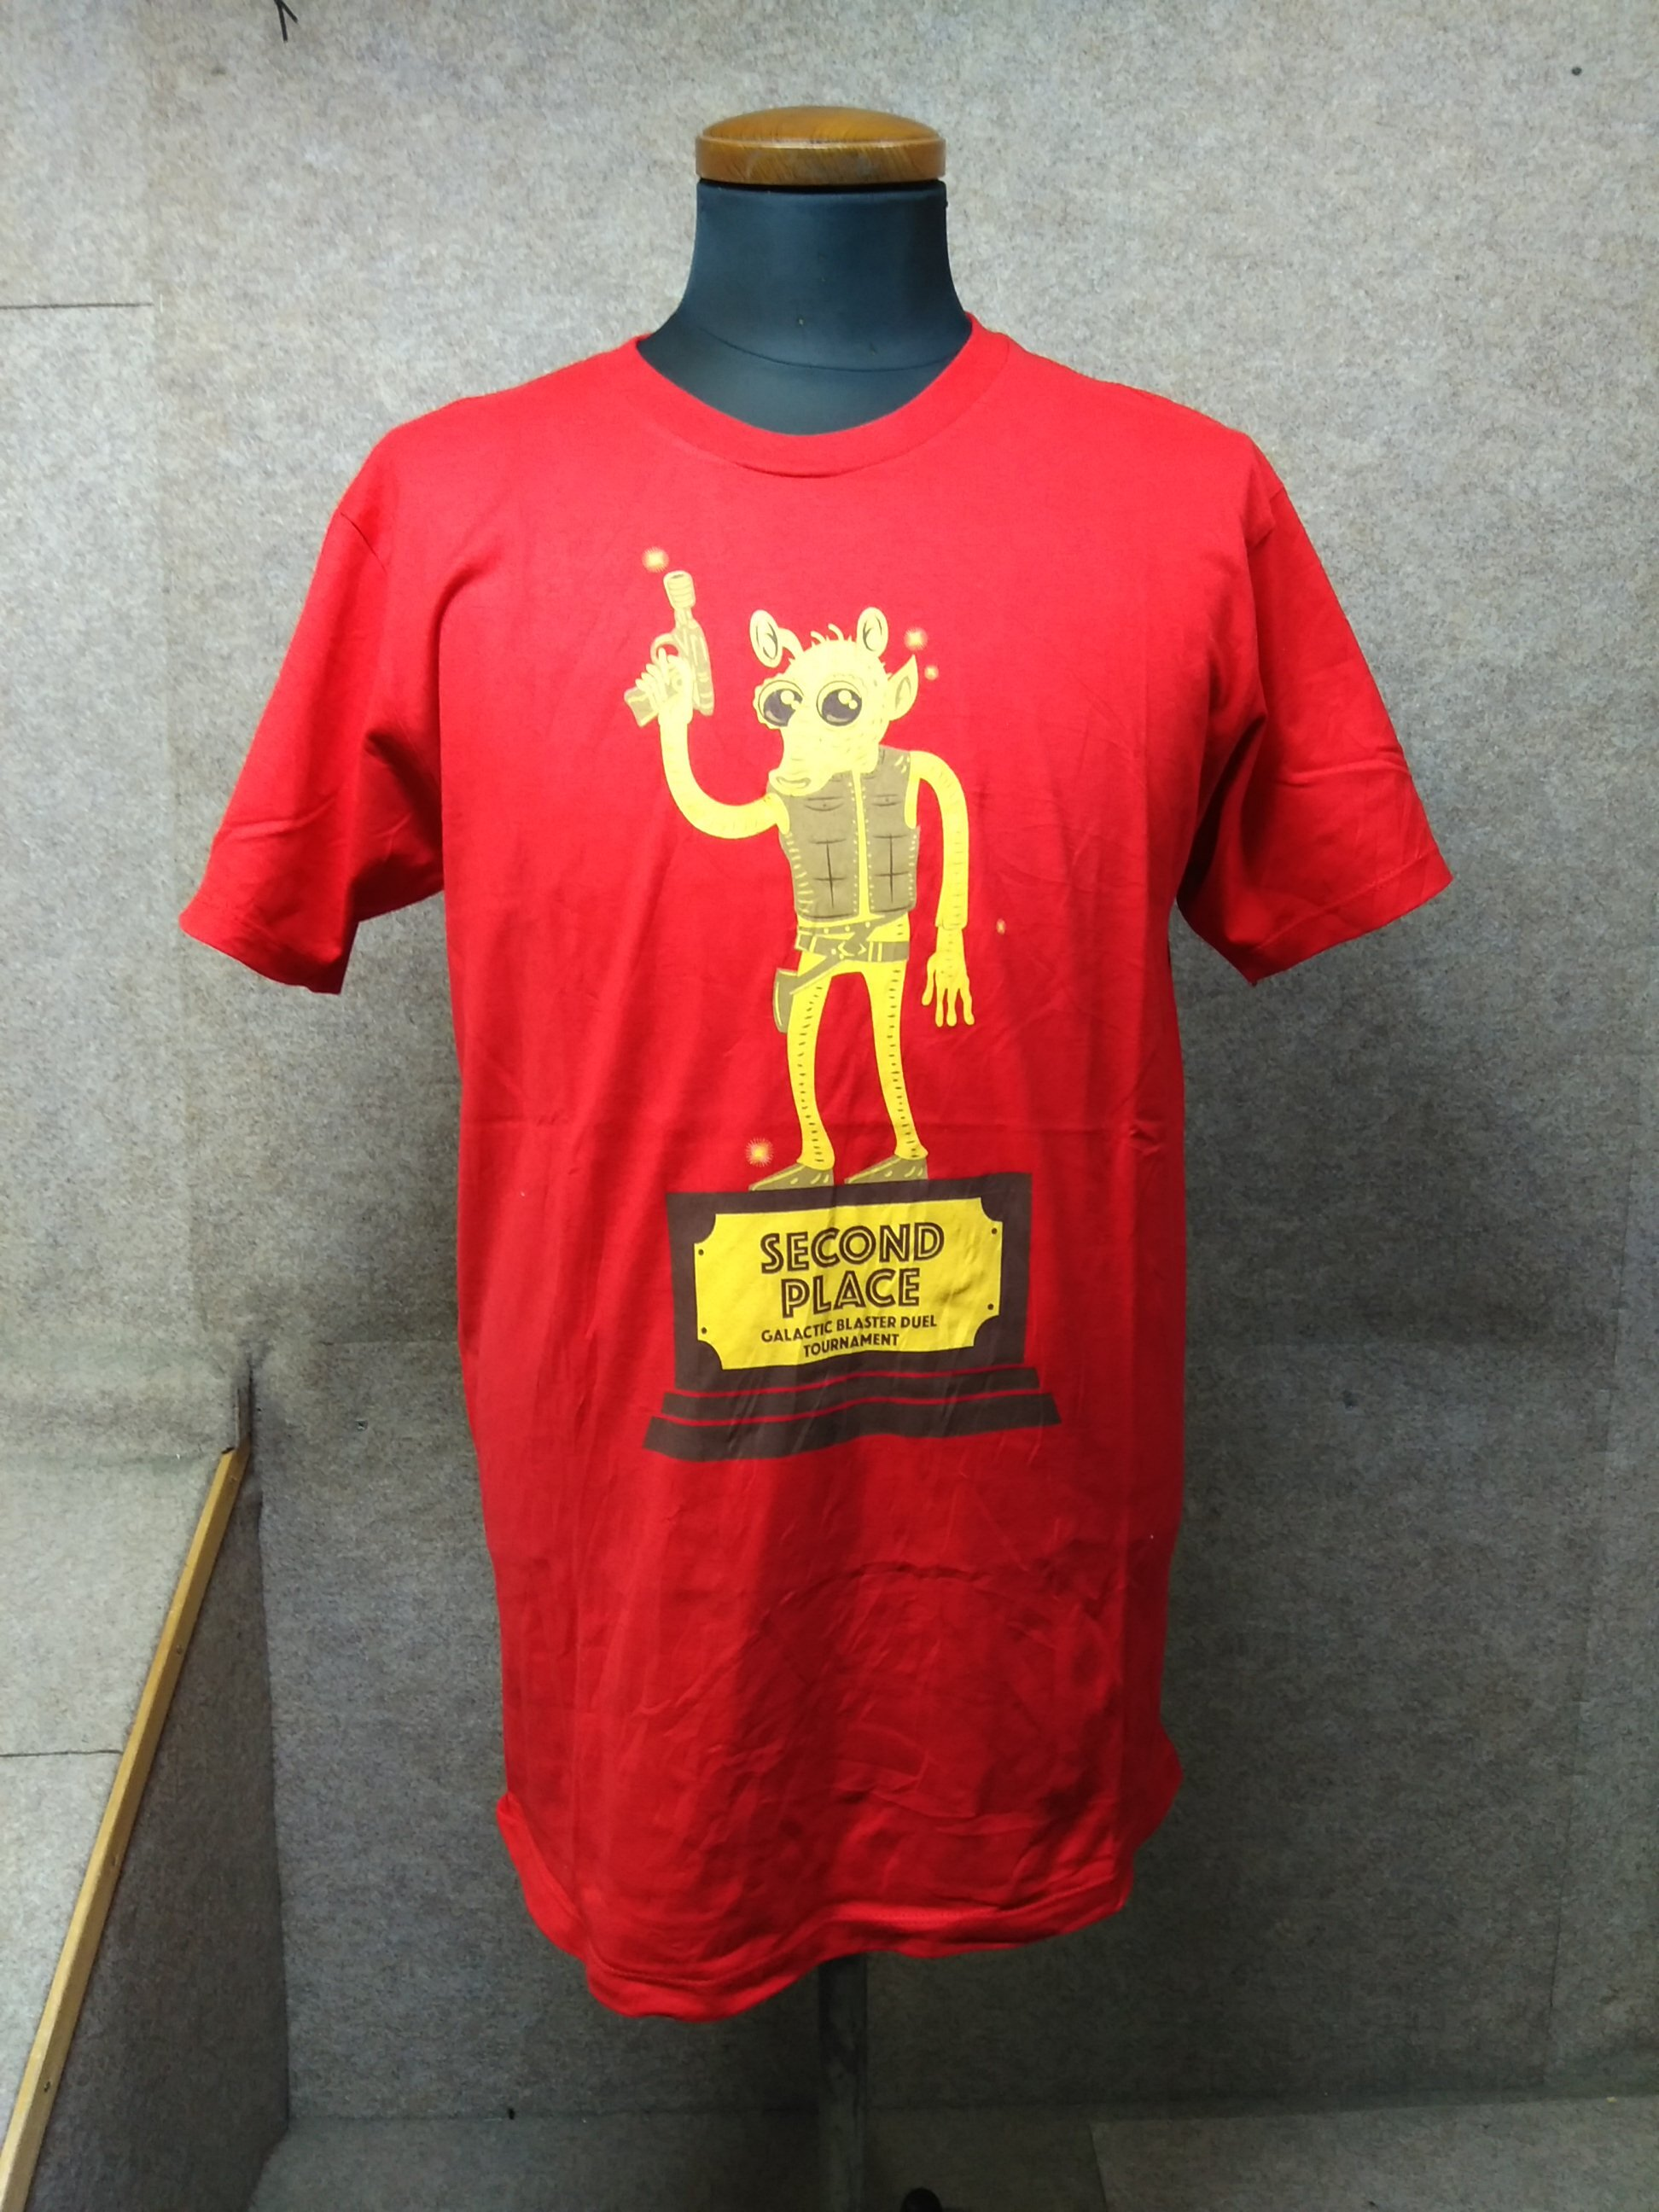 USA輸入古着 2nd place Tシャツ M 赤 宇宙人 h1030c